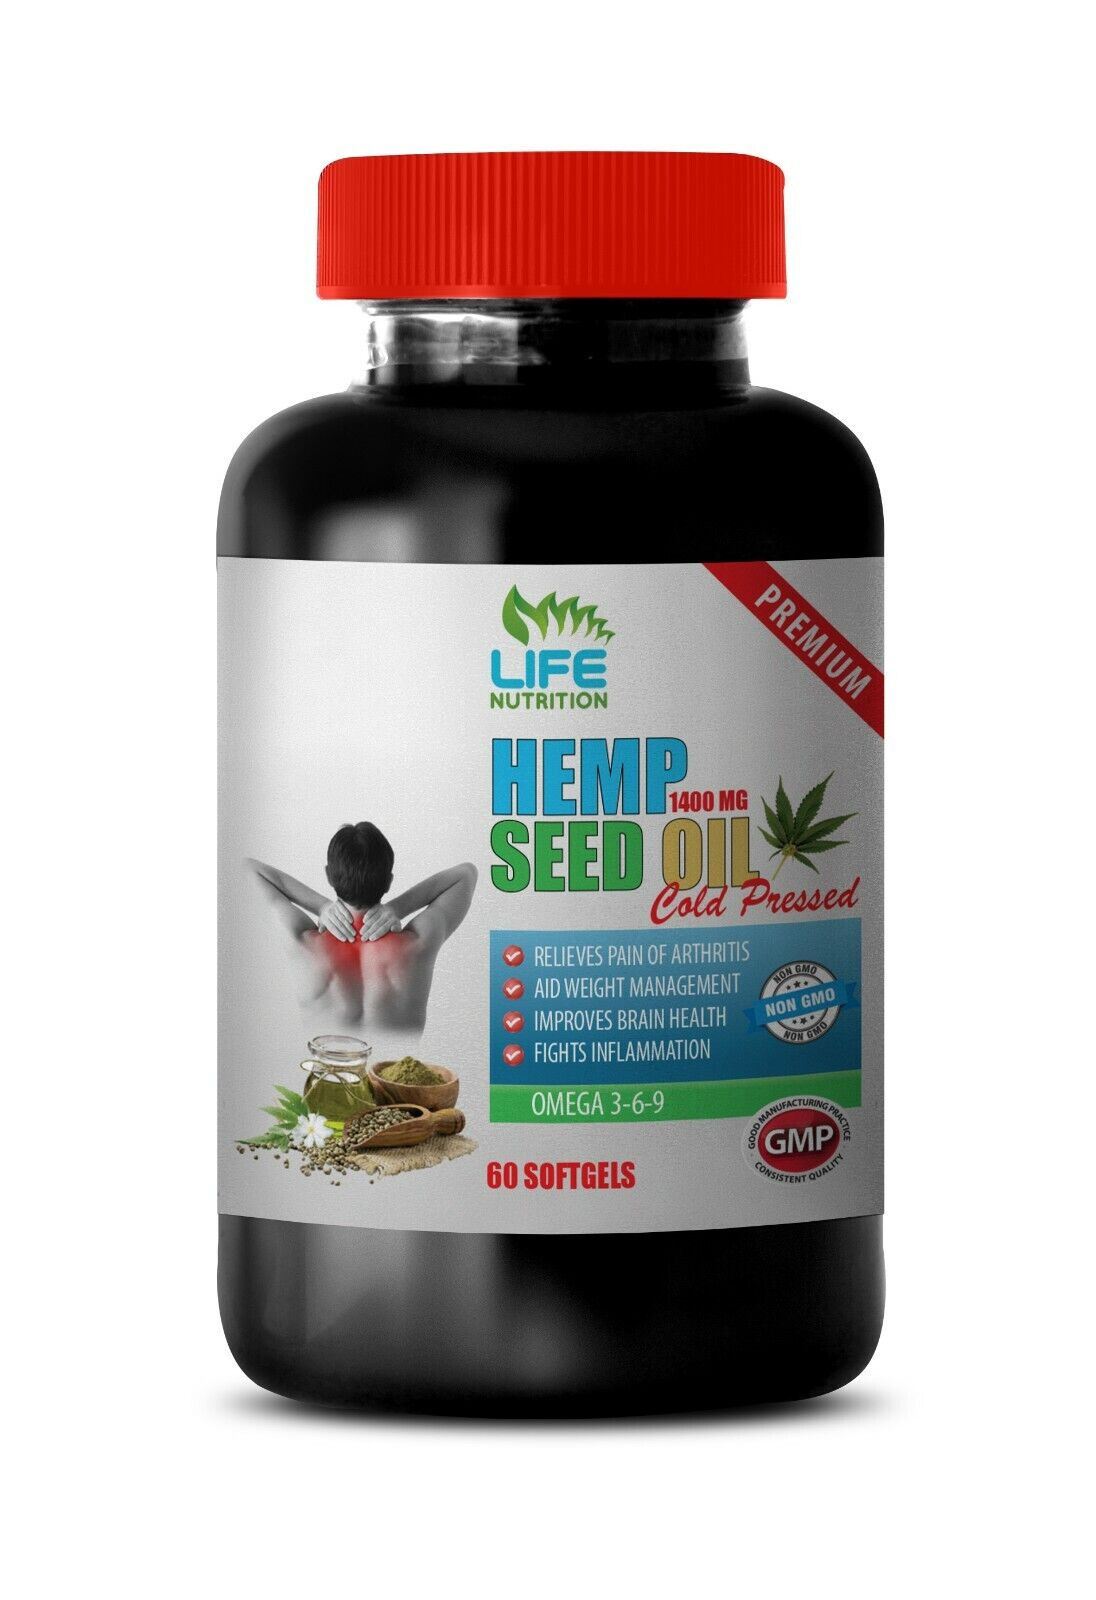 increase immune strength, ORGANIC HEMP SEED OIL 1400mg, weight loss supplement 1